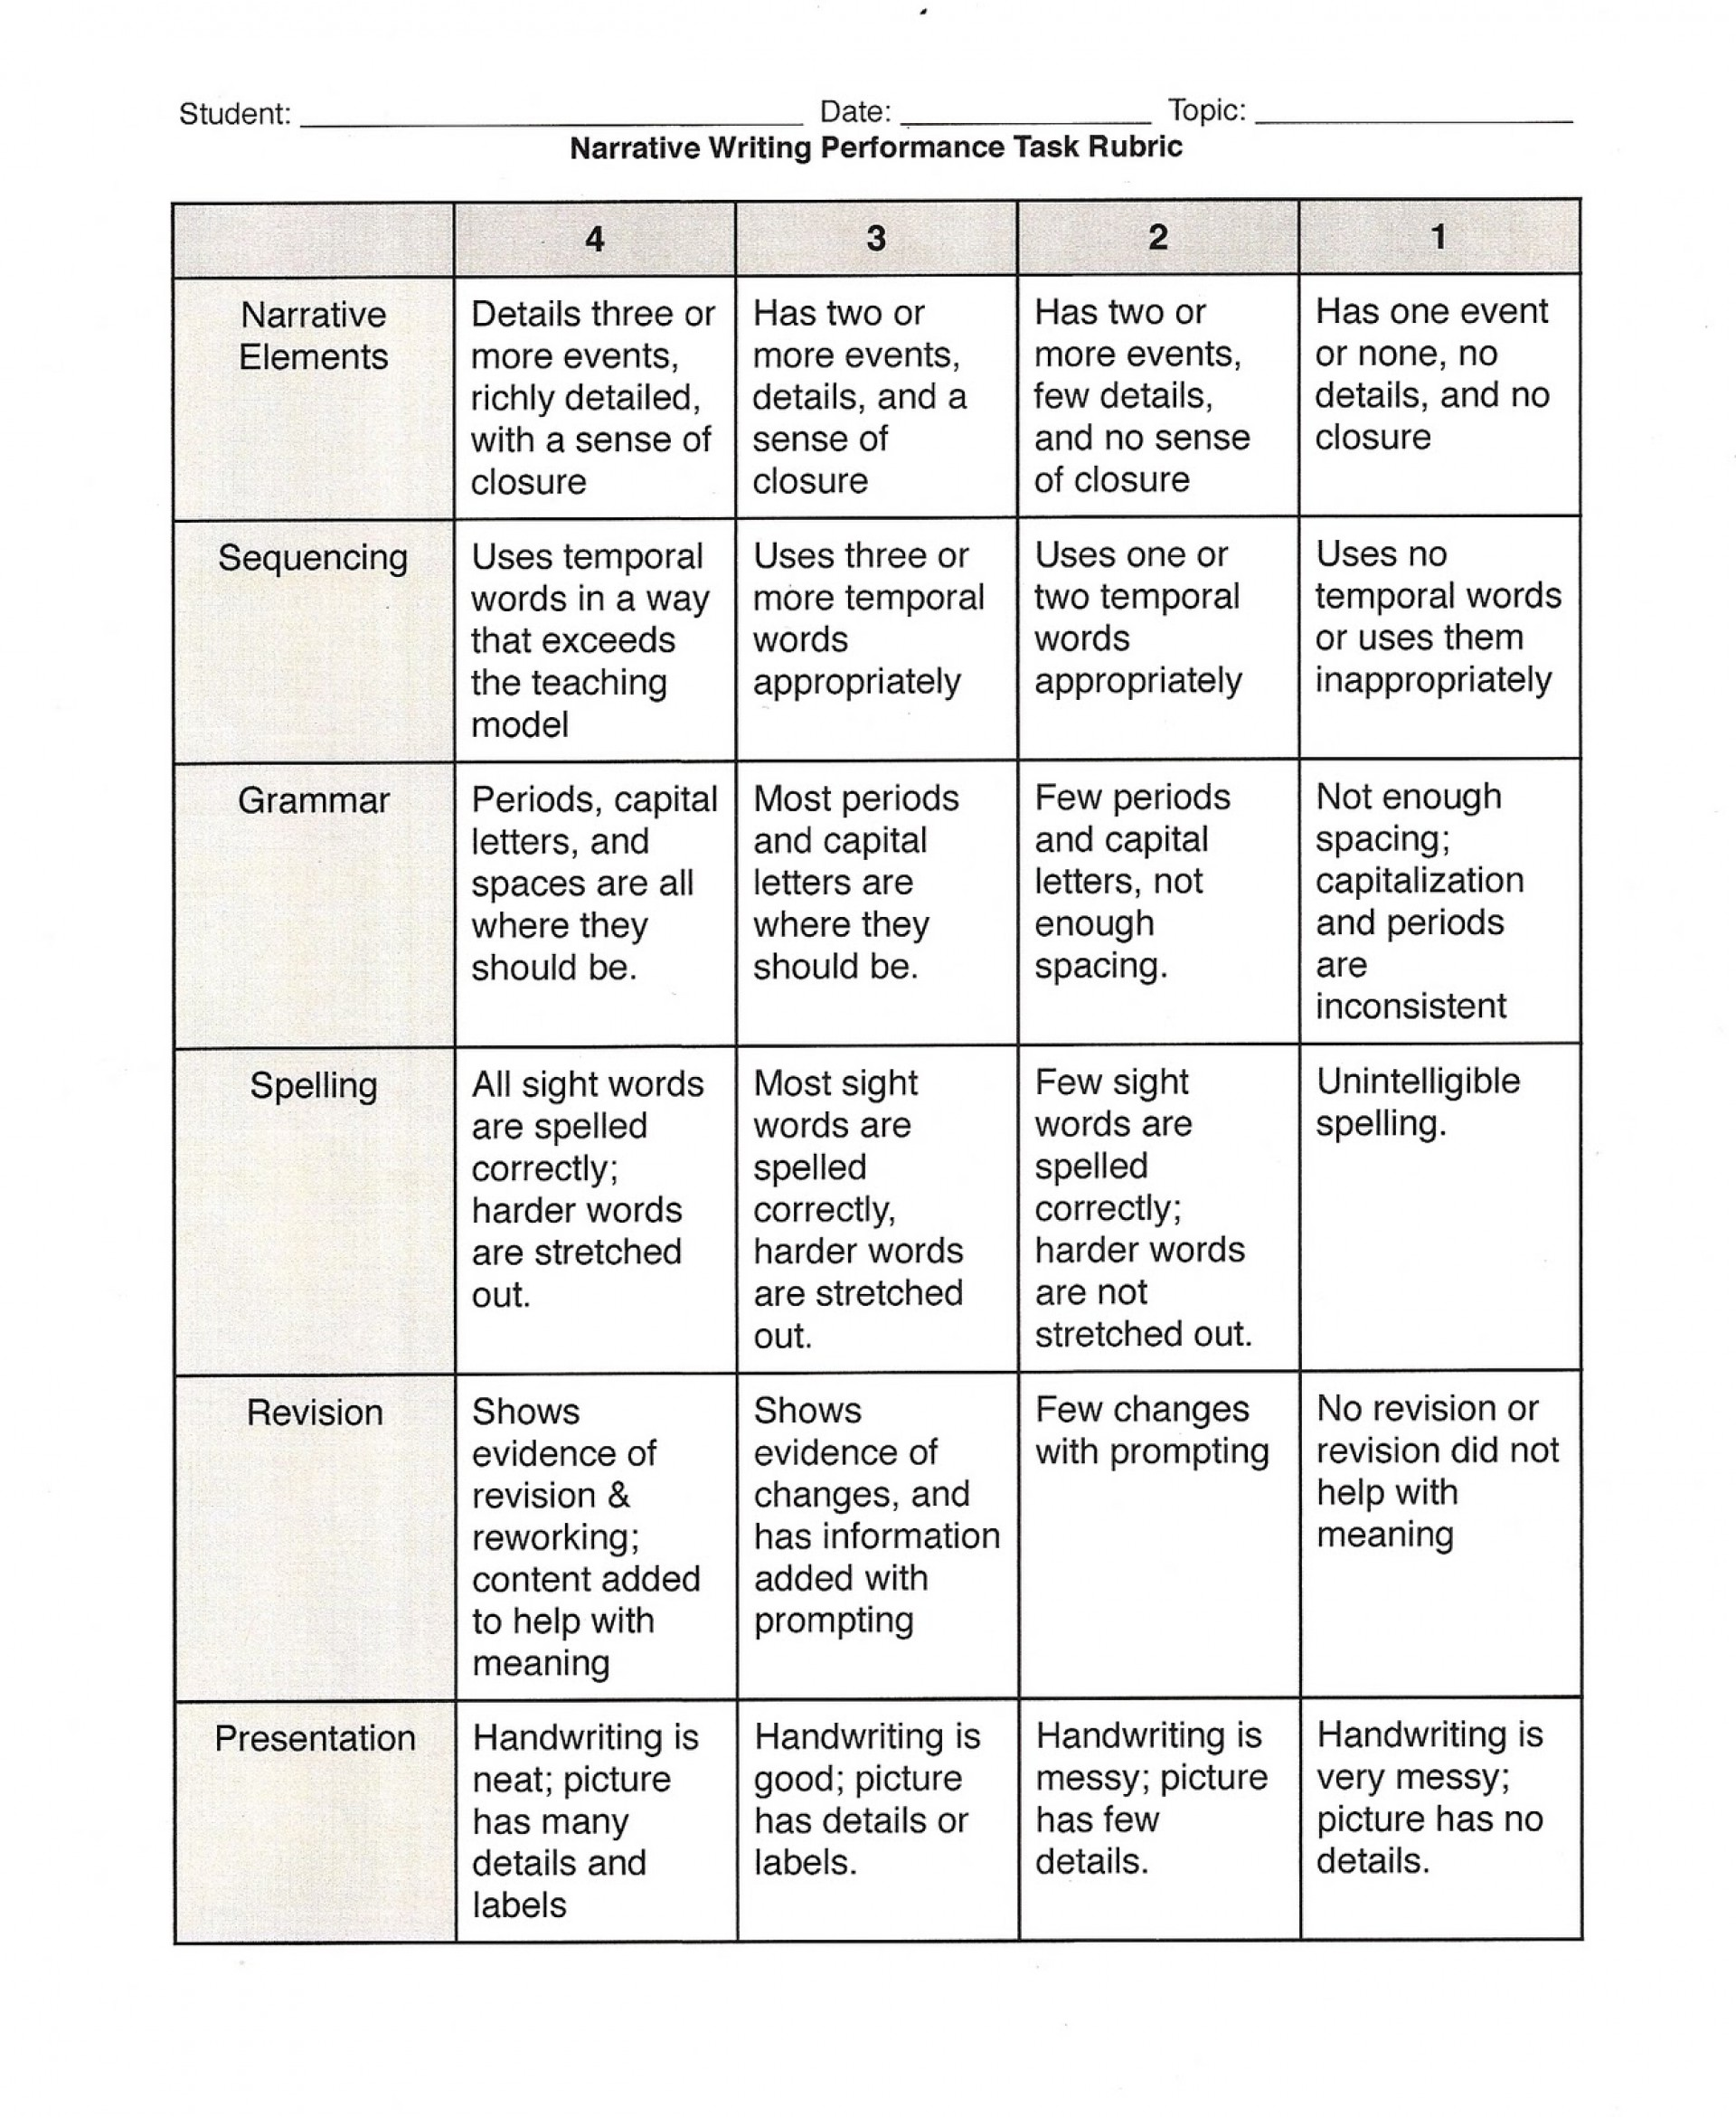 004 Compare And Contrast Essay Rubric Teacher20rubric Wondrous College 7th Grade 1920